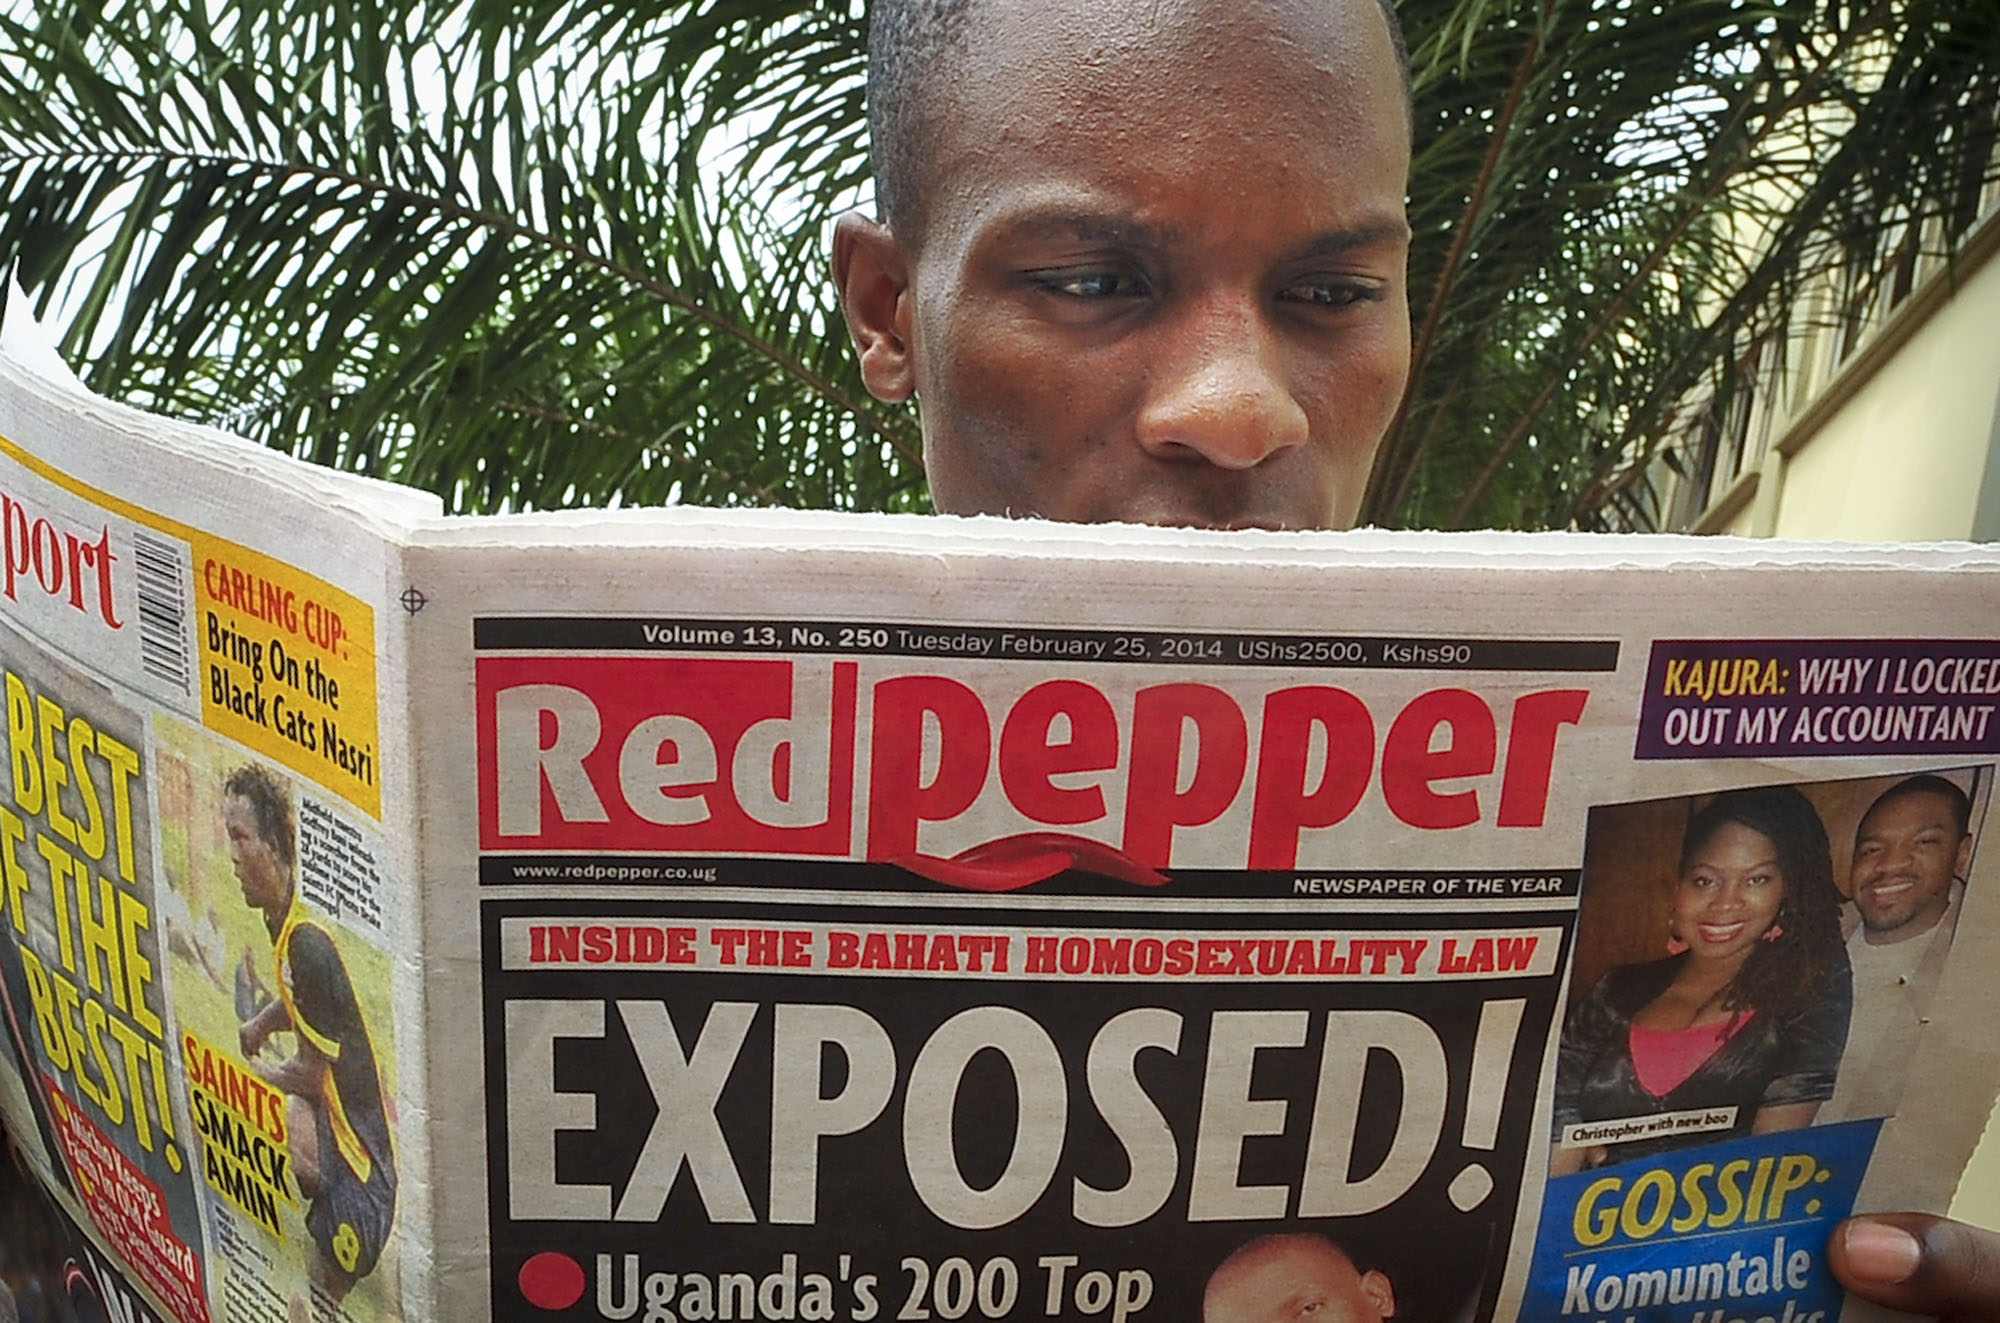 Uganda's LGBT community is using journalism to try to counter negative reporting after the tabloid Red Pepper, pictured, published a list of what it called the country's '200 top homosexuals.' (AP/Stephen Wandera)